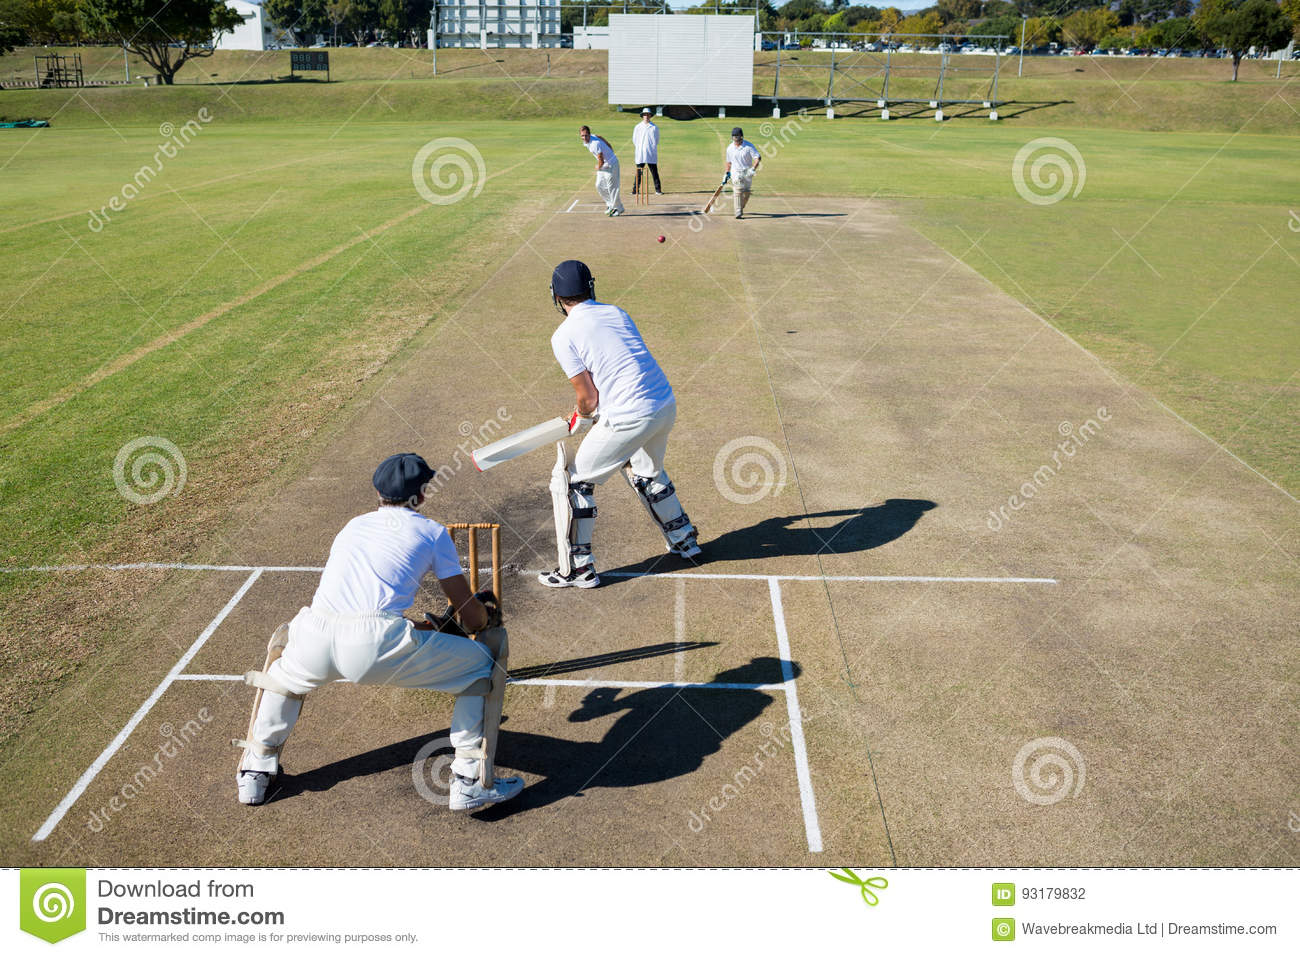 High angle view of cricket match at field